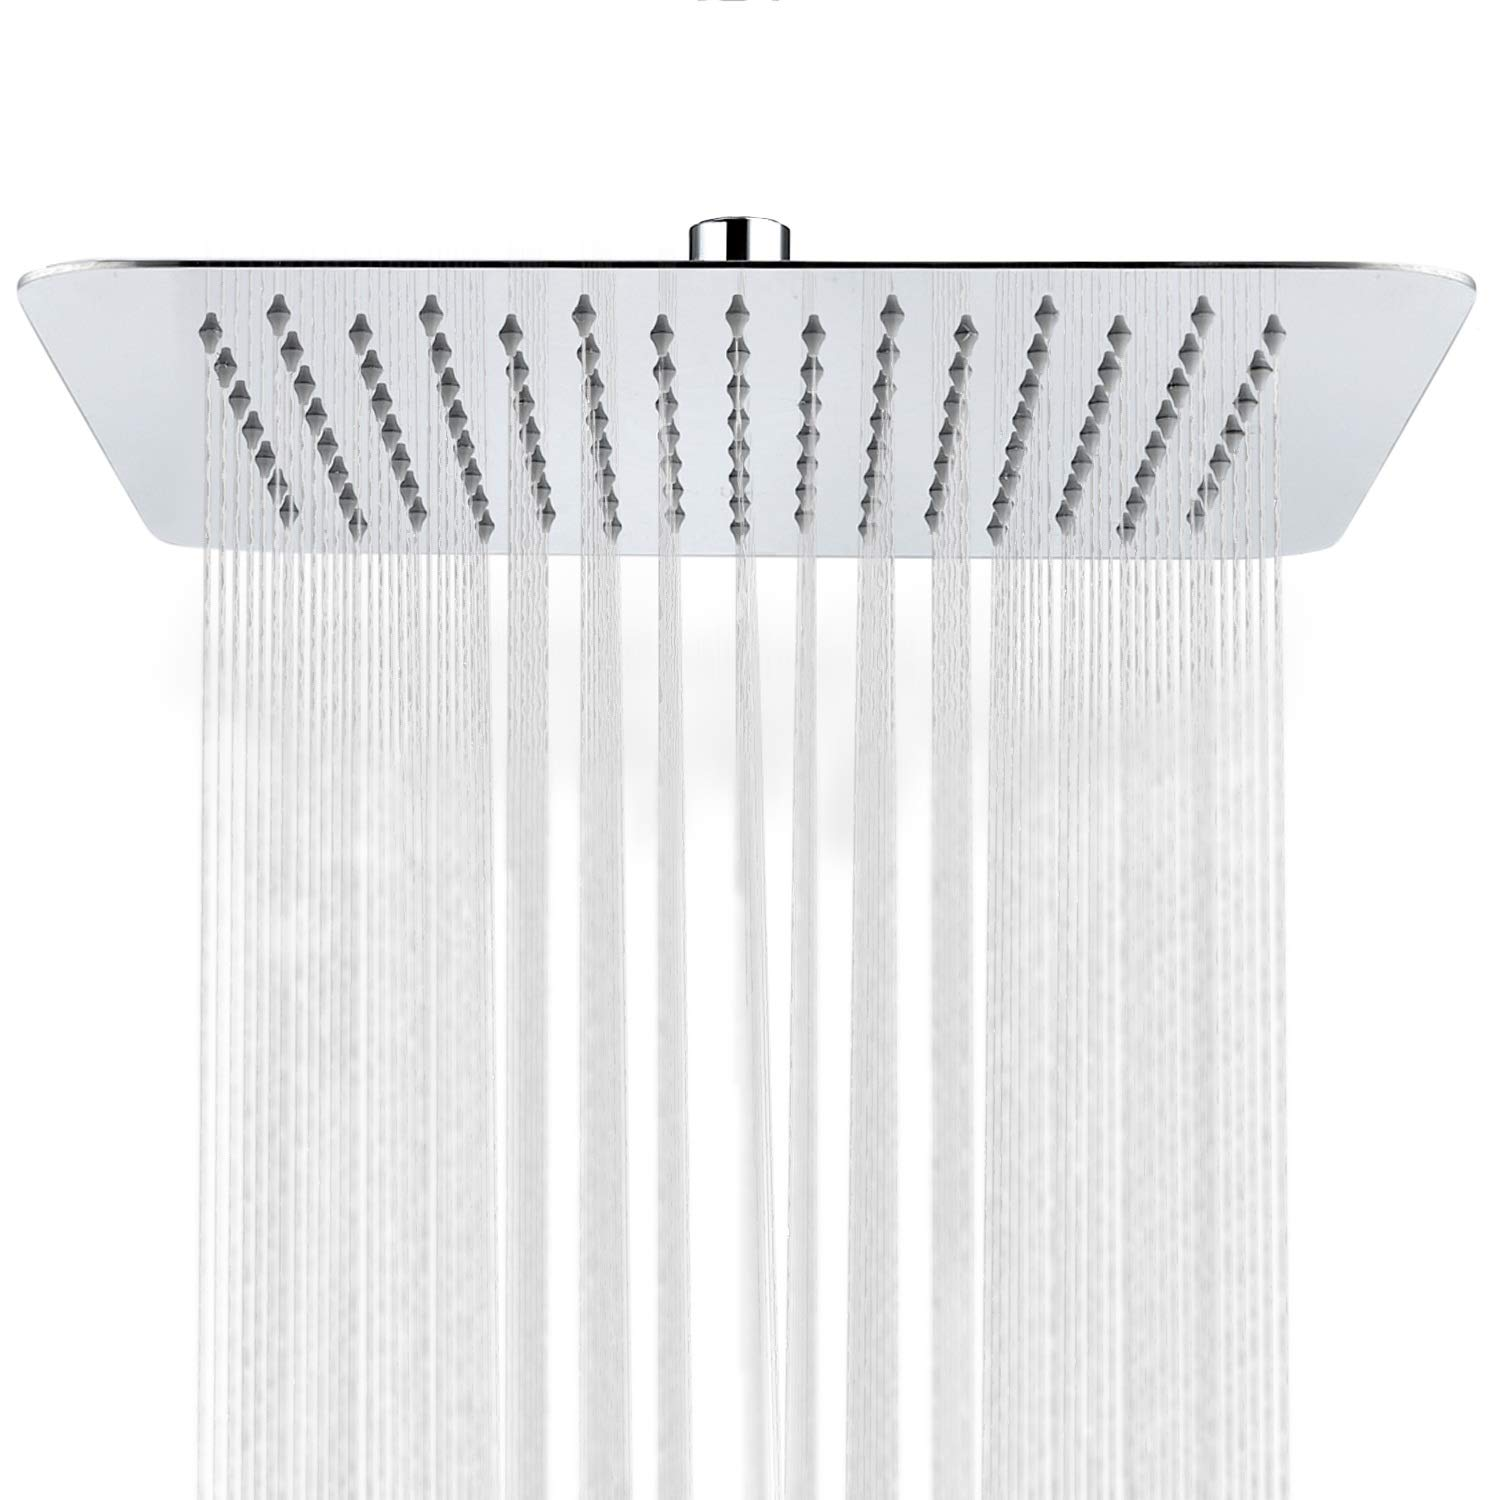 SR SUN RISE 12 Inch Stainless Steel Rainfall Shower Head